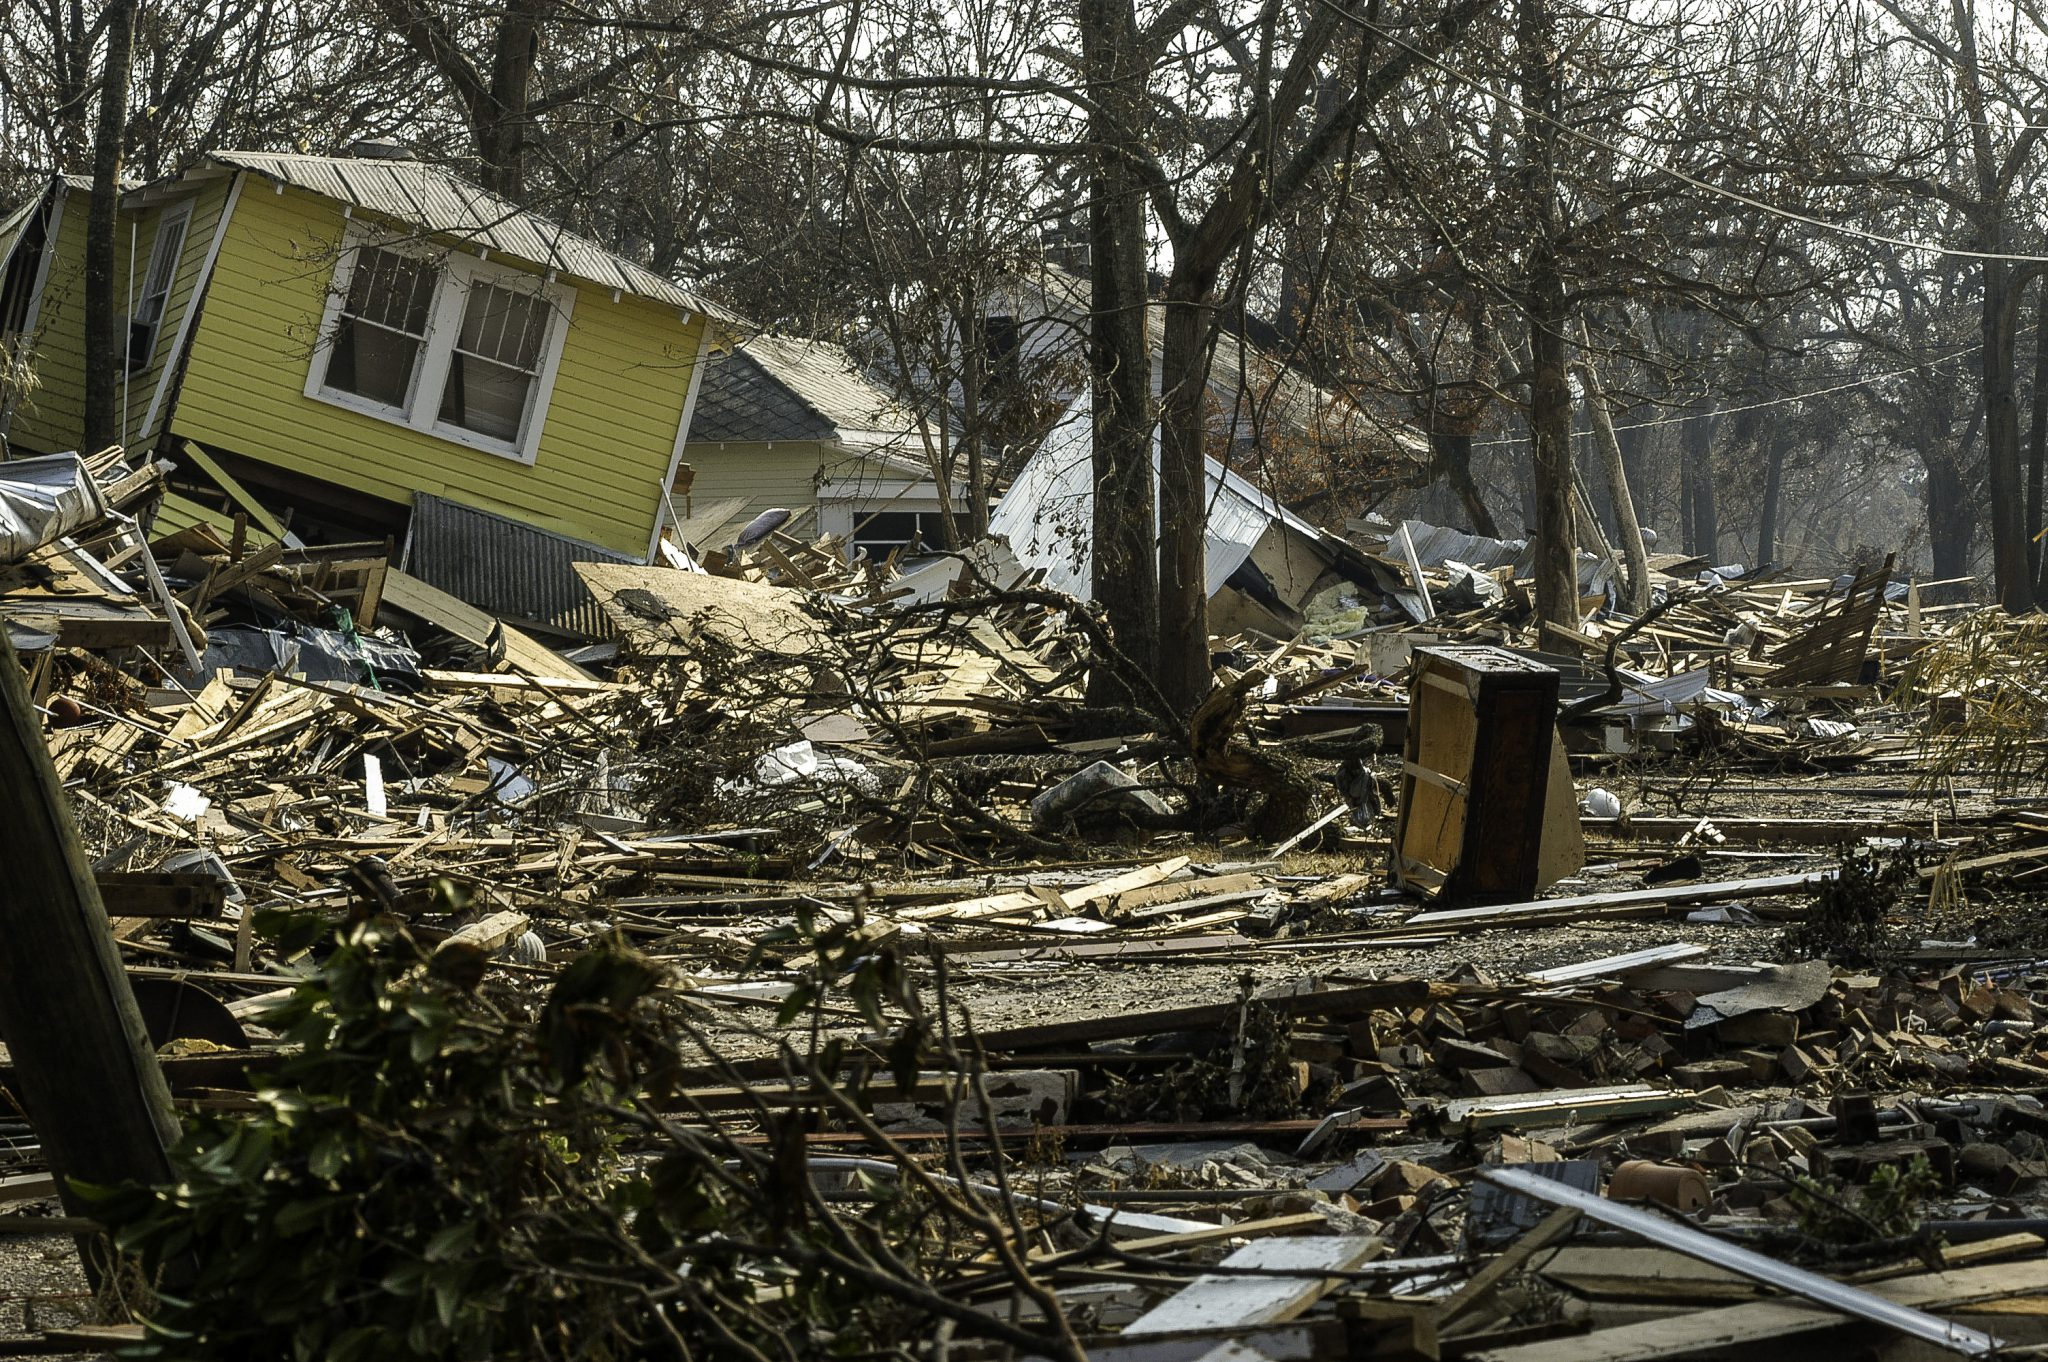 Wreckage from a home destroyed by Hurricane Katrina.